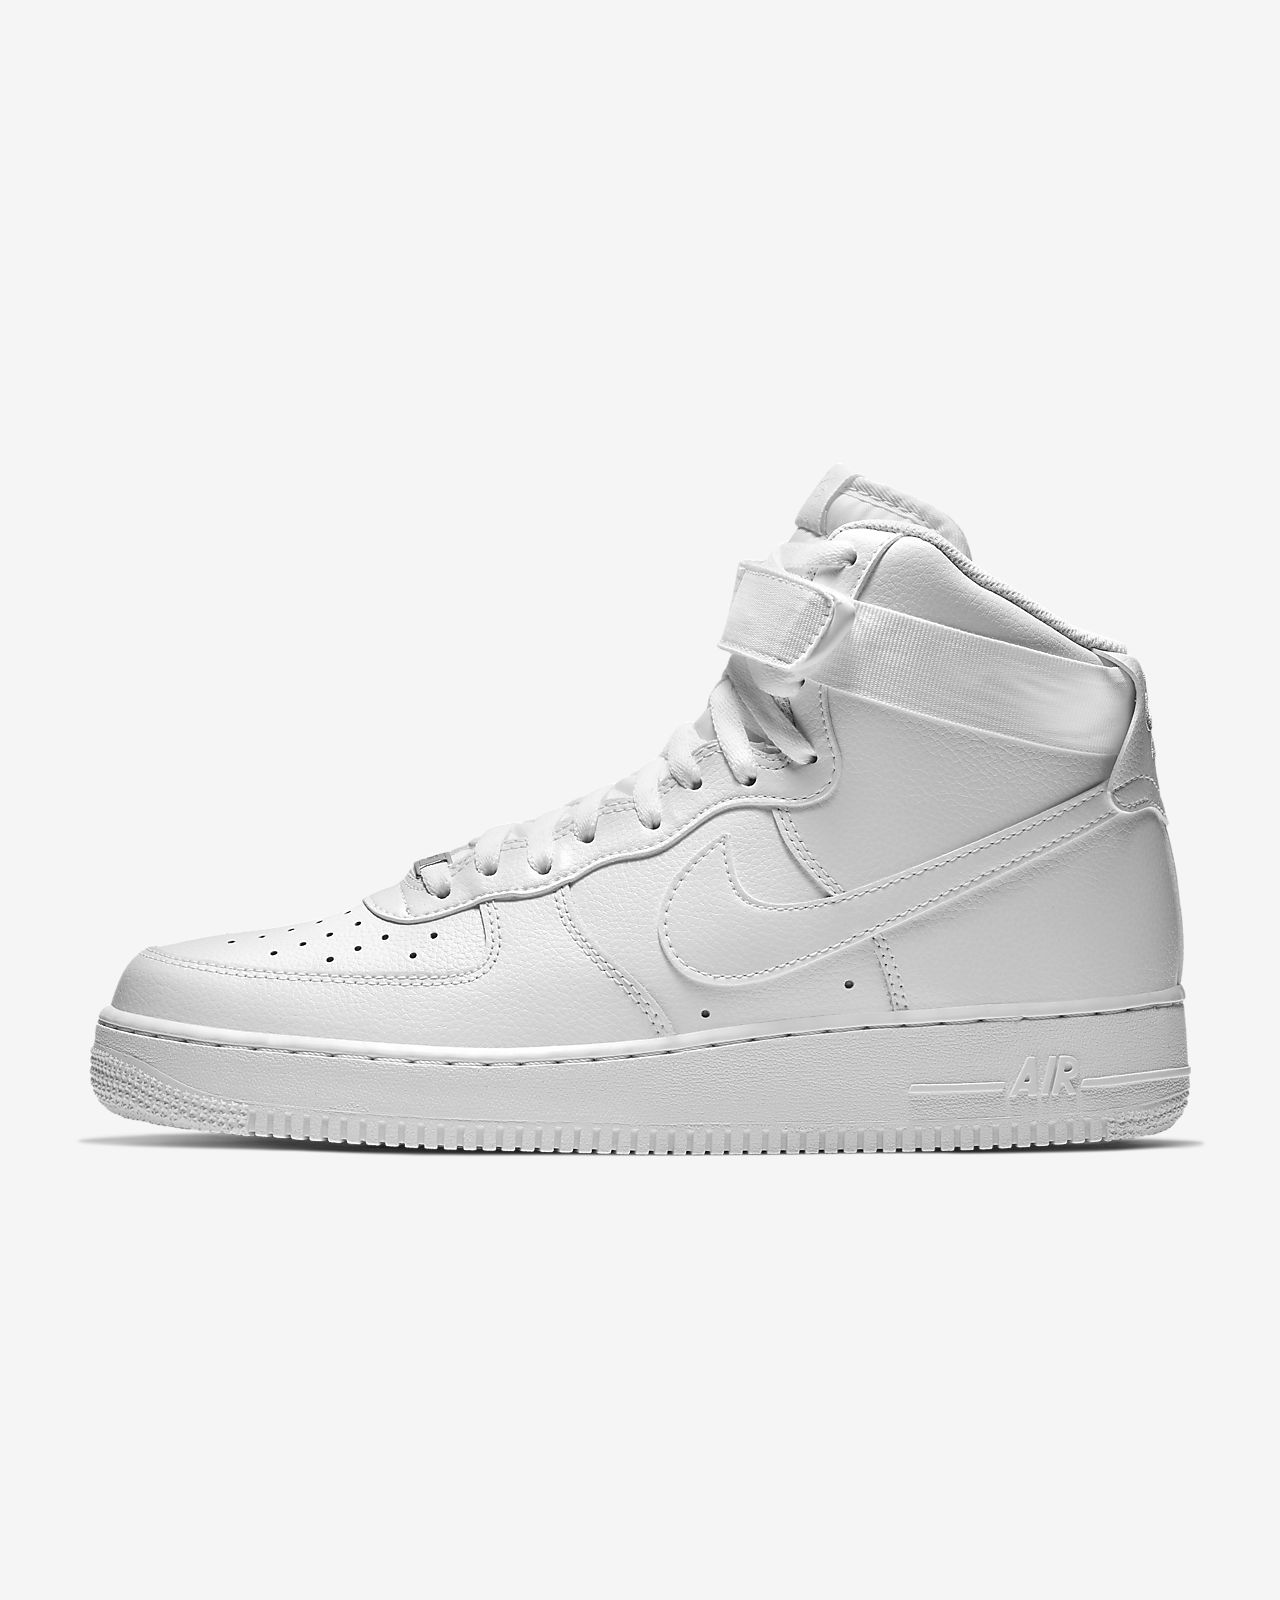 9e21d870d791 Nike Air Force 1 High 07 Men s Shoe. Nike.com